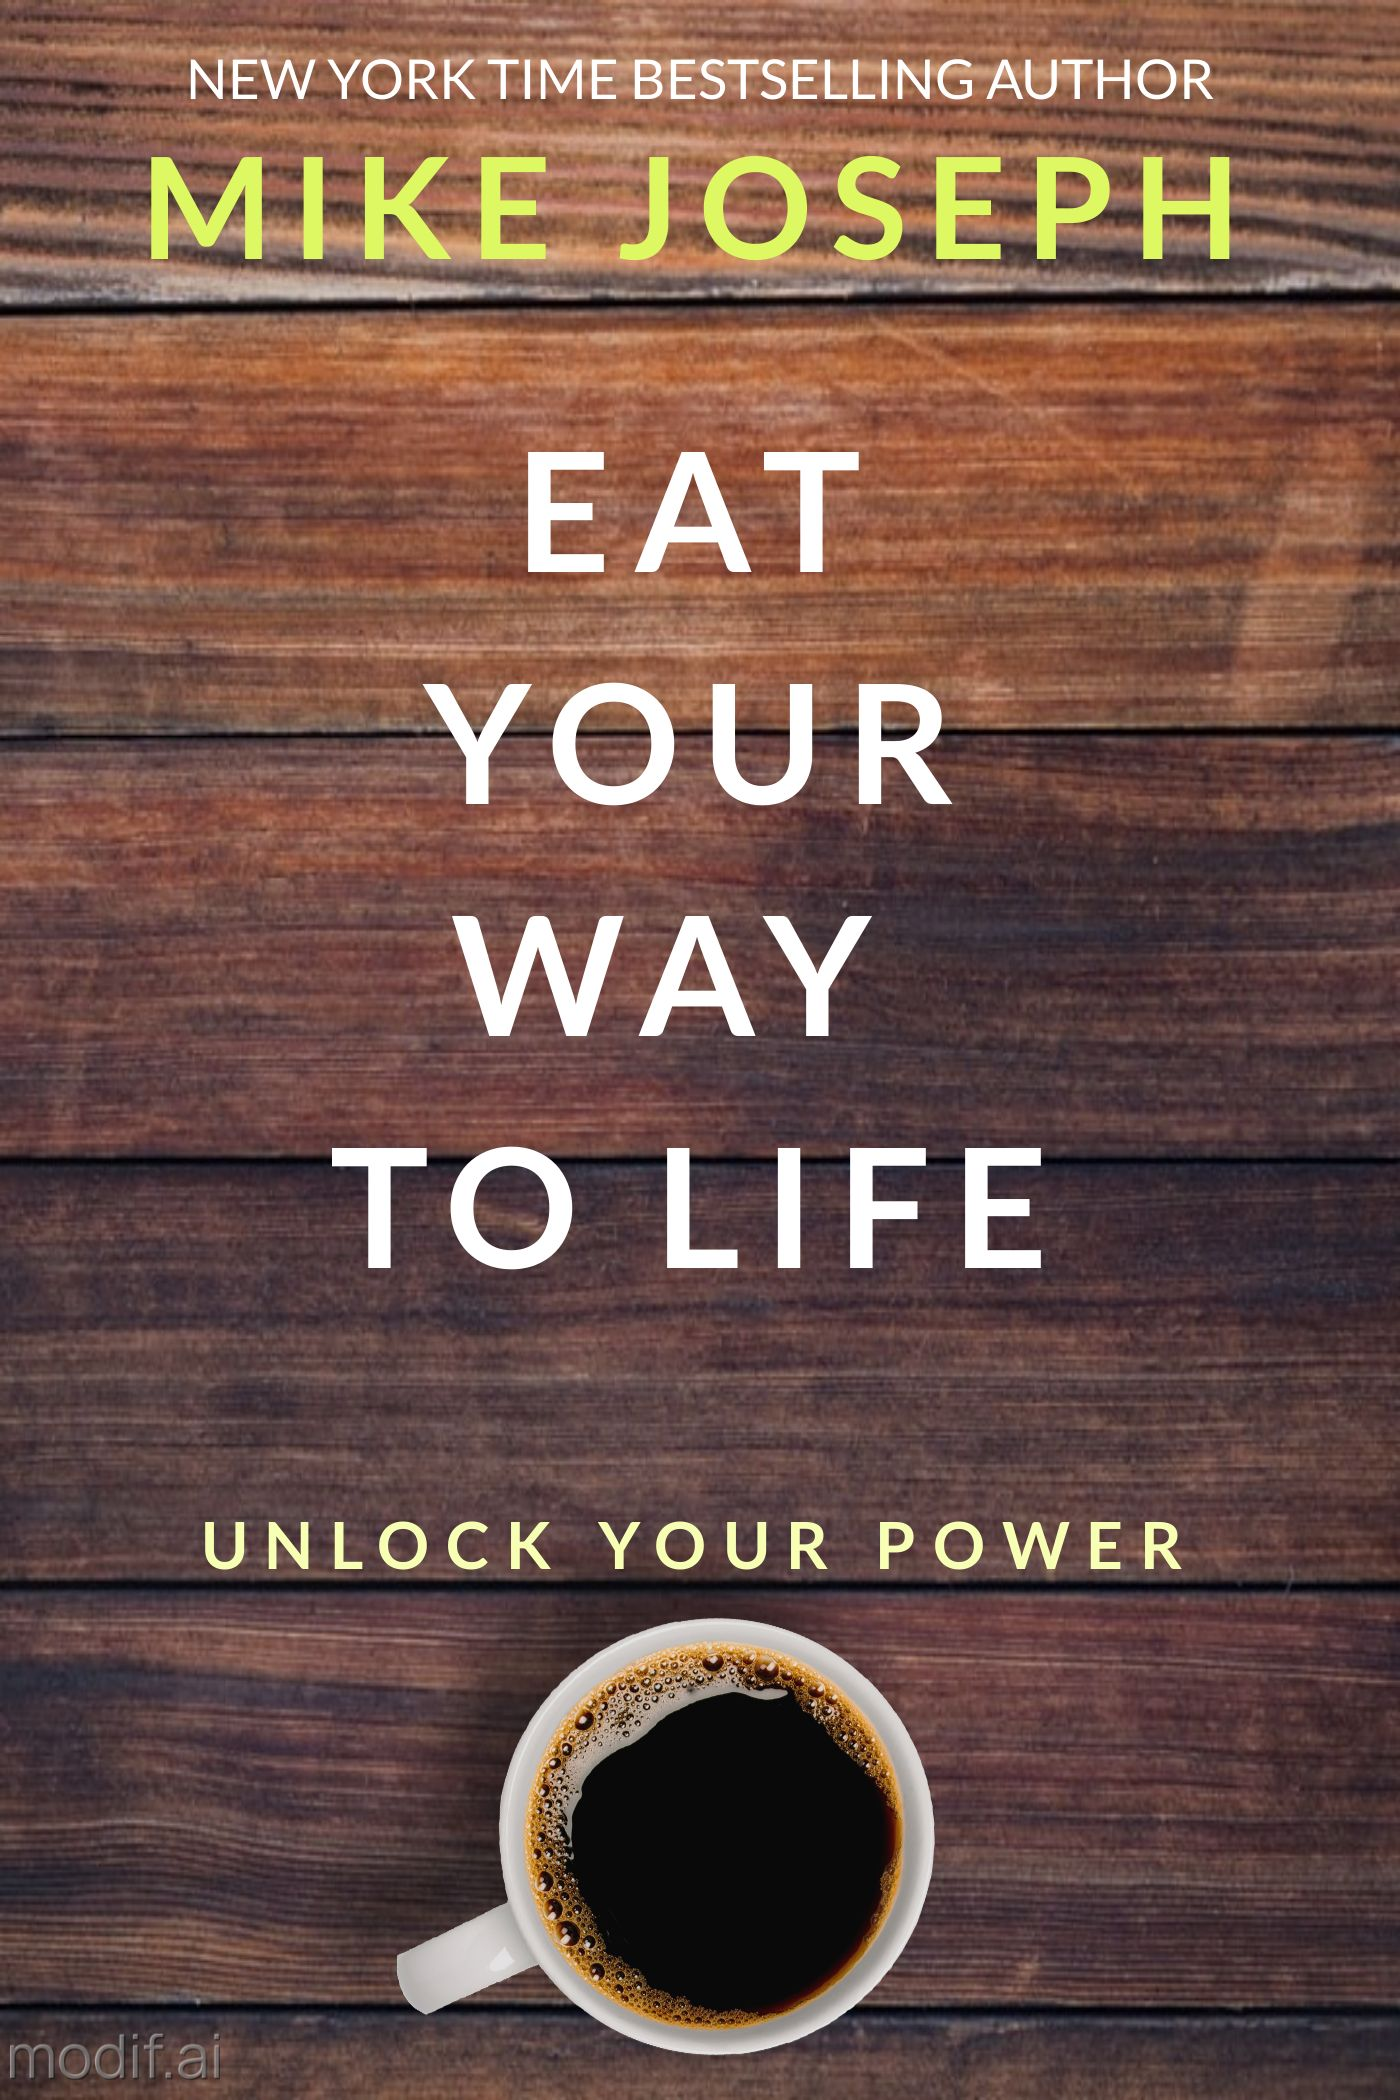 The Power of Food eBook Cover Template